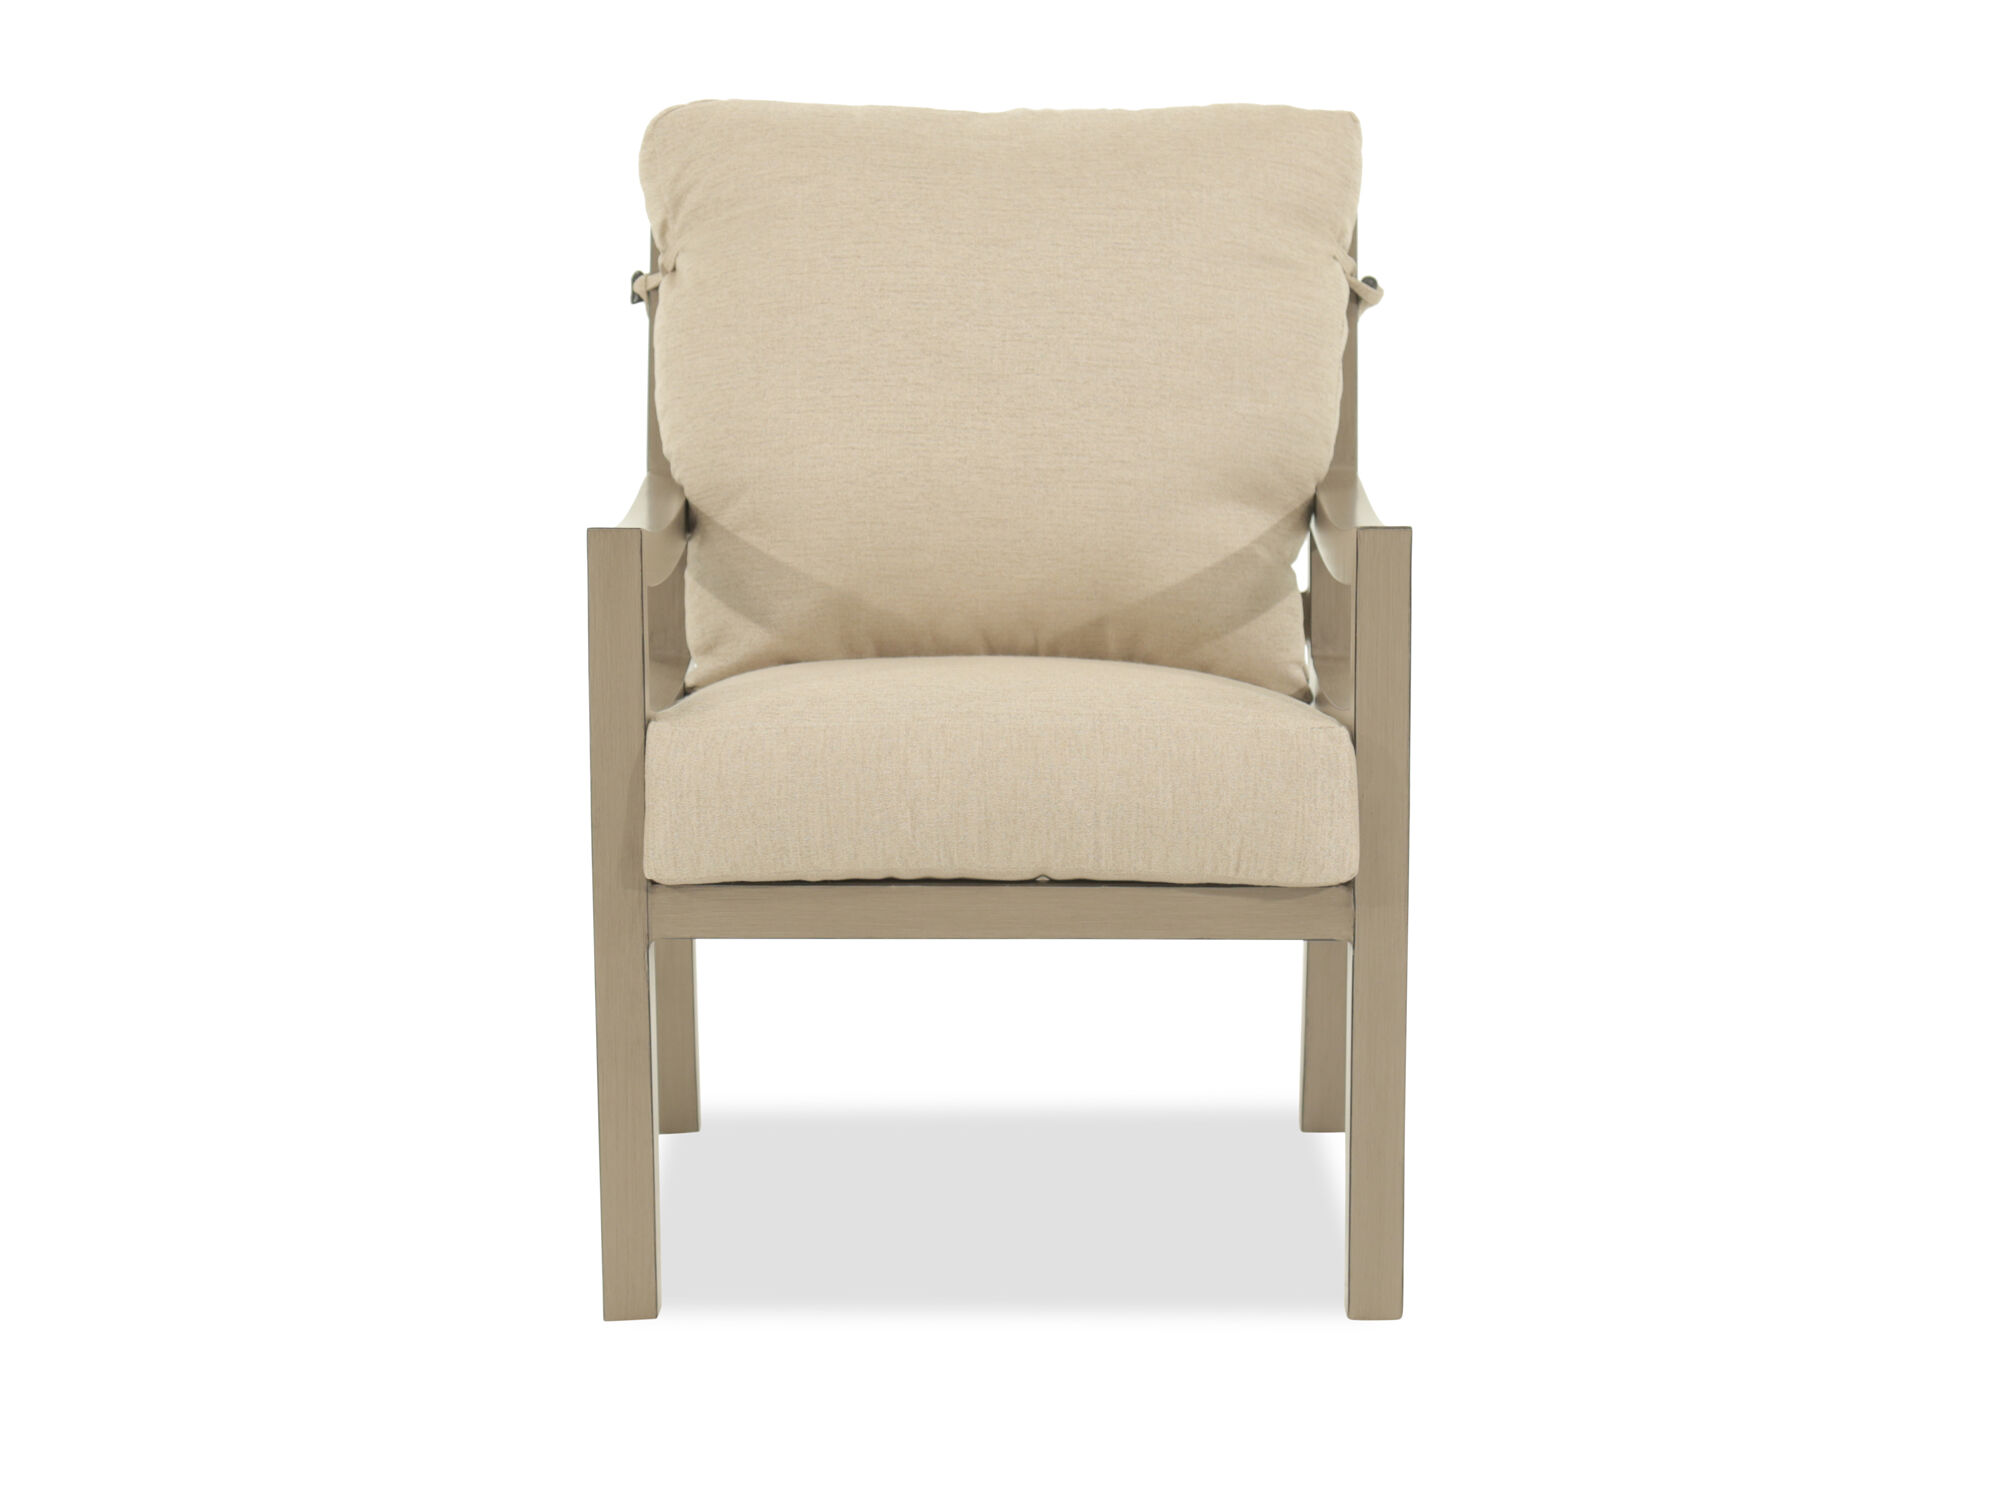 Casual Dining Chair with Cushion in Beige